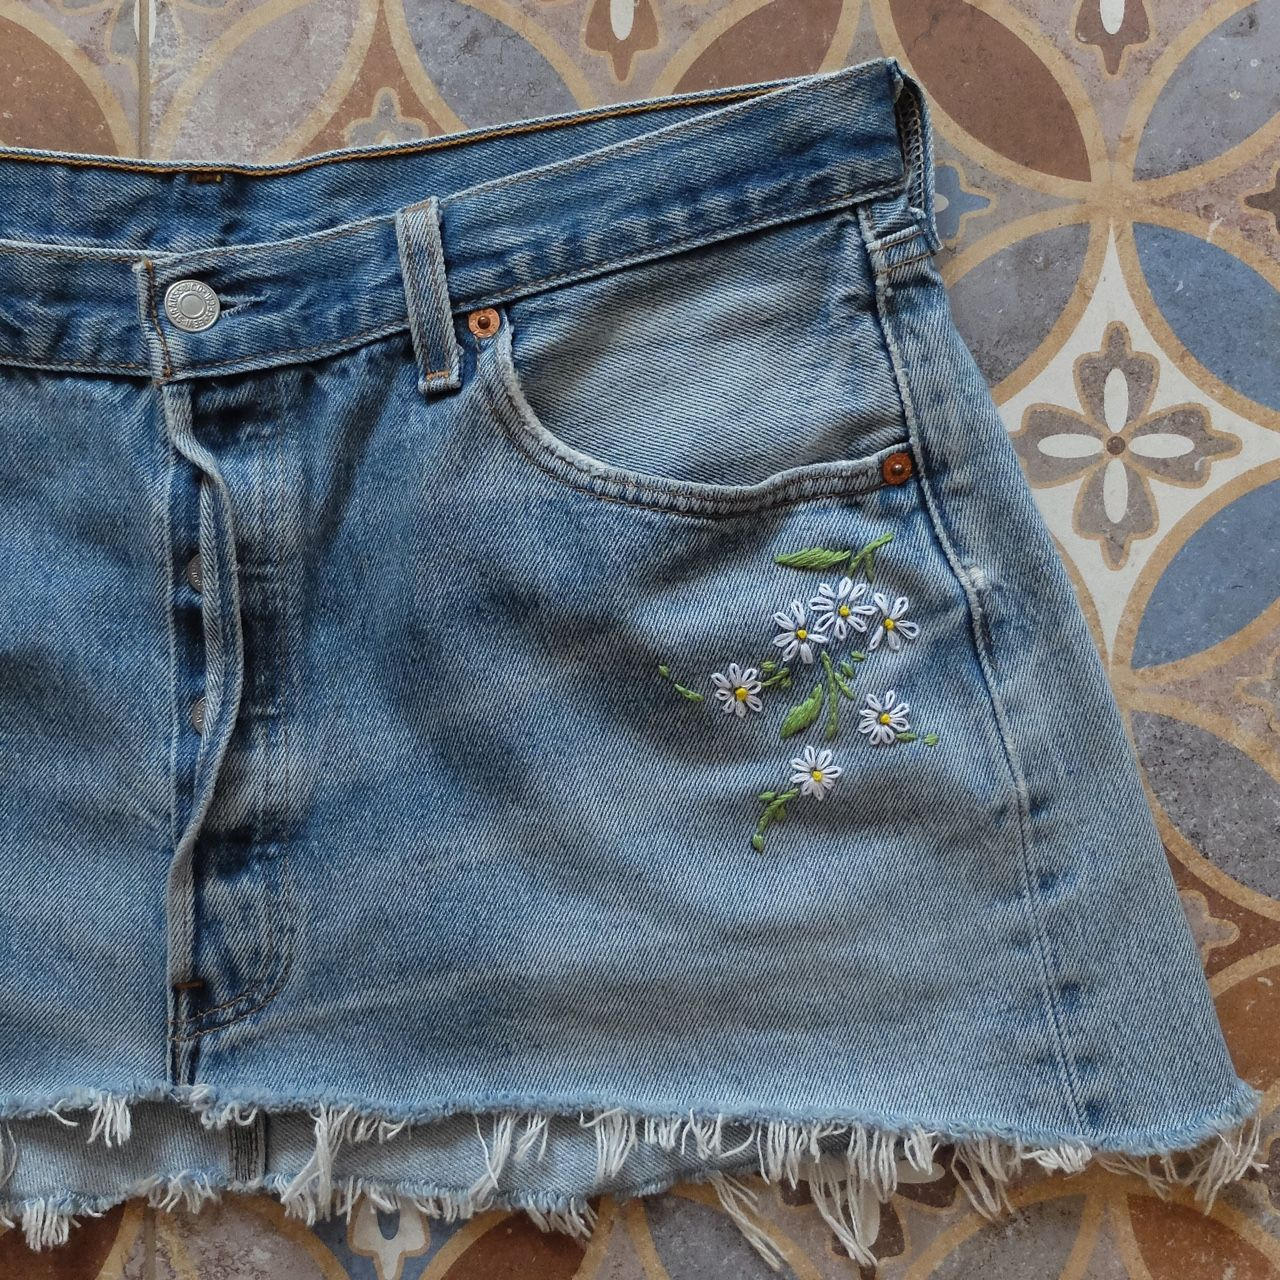 VINTAGE REWORKED Hand Embroidered Levis Jean Skirt. Stunning summer skirt reworked, restitched and recycled...by me! Super cute hand embroidered daisies below the front pocket and on the back below the waist band. Label reads Waist 34 - around a UK size 14-16 but please check measurements carefully. Gorgeous distressed denim in a stone wash blue, hand stitched with white and yellow daisy flowers. Completely one of a kind and unique! #reworked #restitched #recycled #handembroidery…